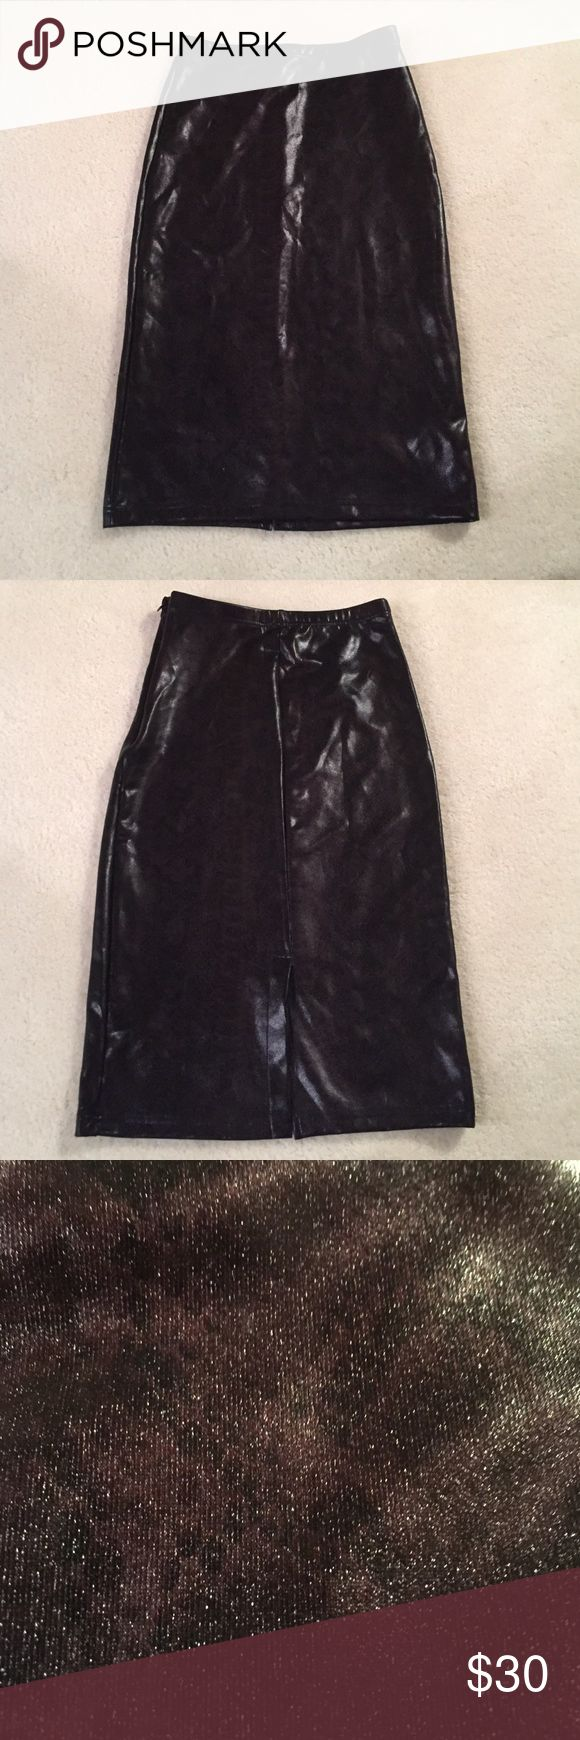 Topshop skirt NWOT New never worn 3rd pic shows upfront skirt has a sheen faint snake skin look too cool Topshop Skirts